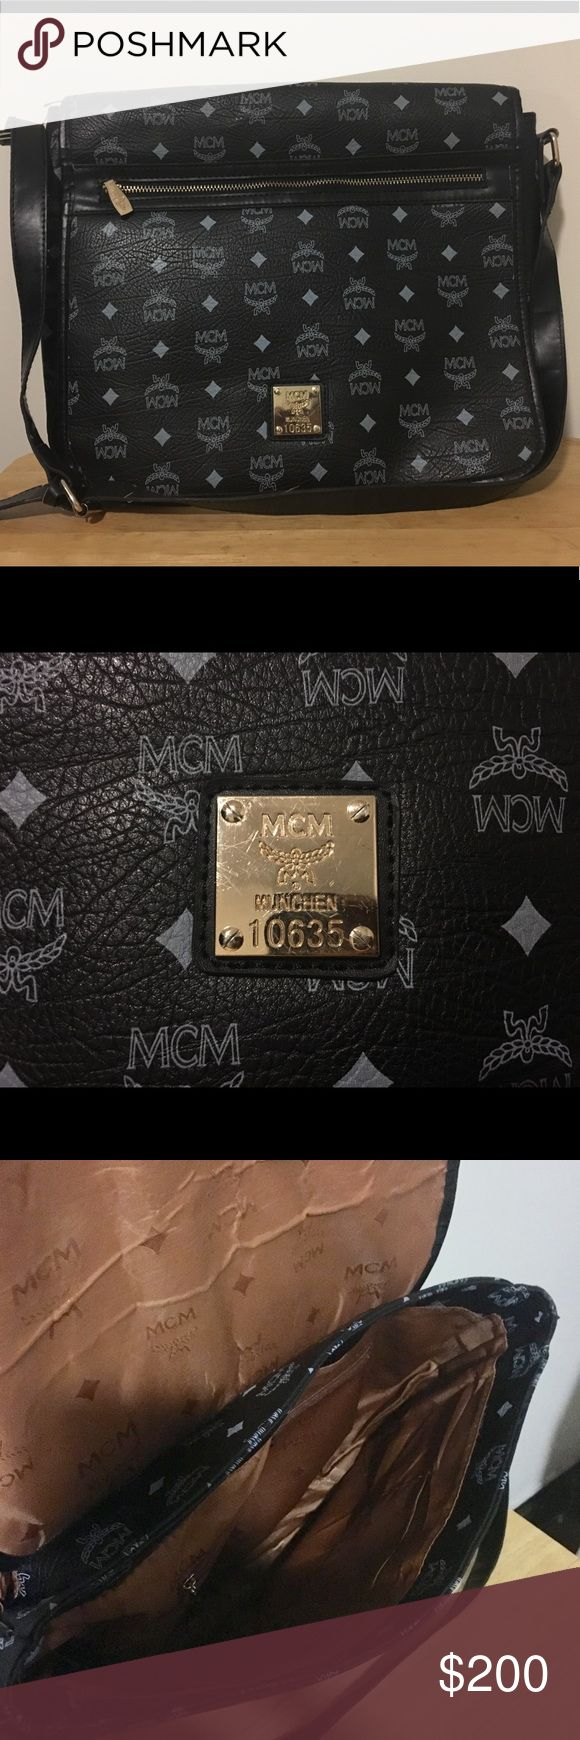 MCM Bag MCM Bag in good condition.  The bag is dark blue, NOT black as it appears in the picture. MCM Bags Crossbody Bags